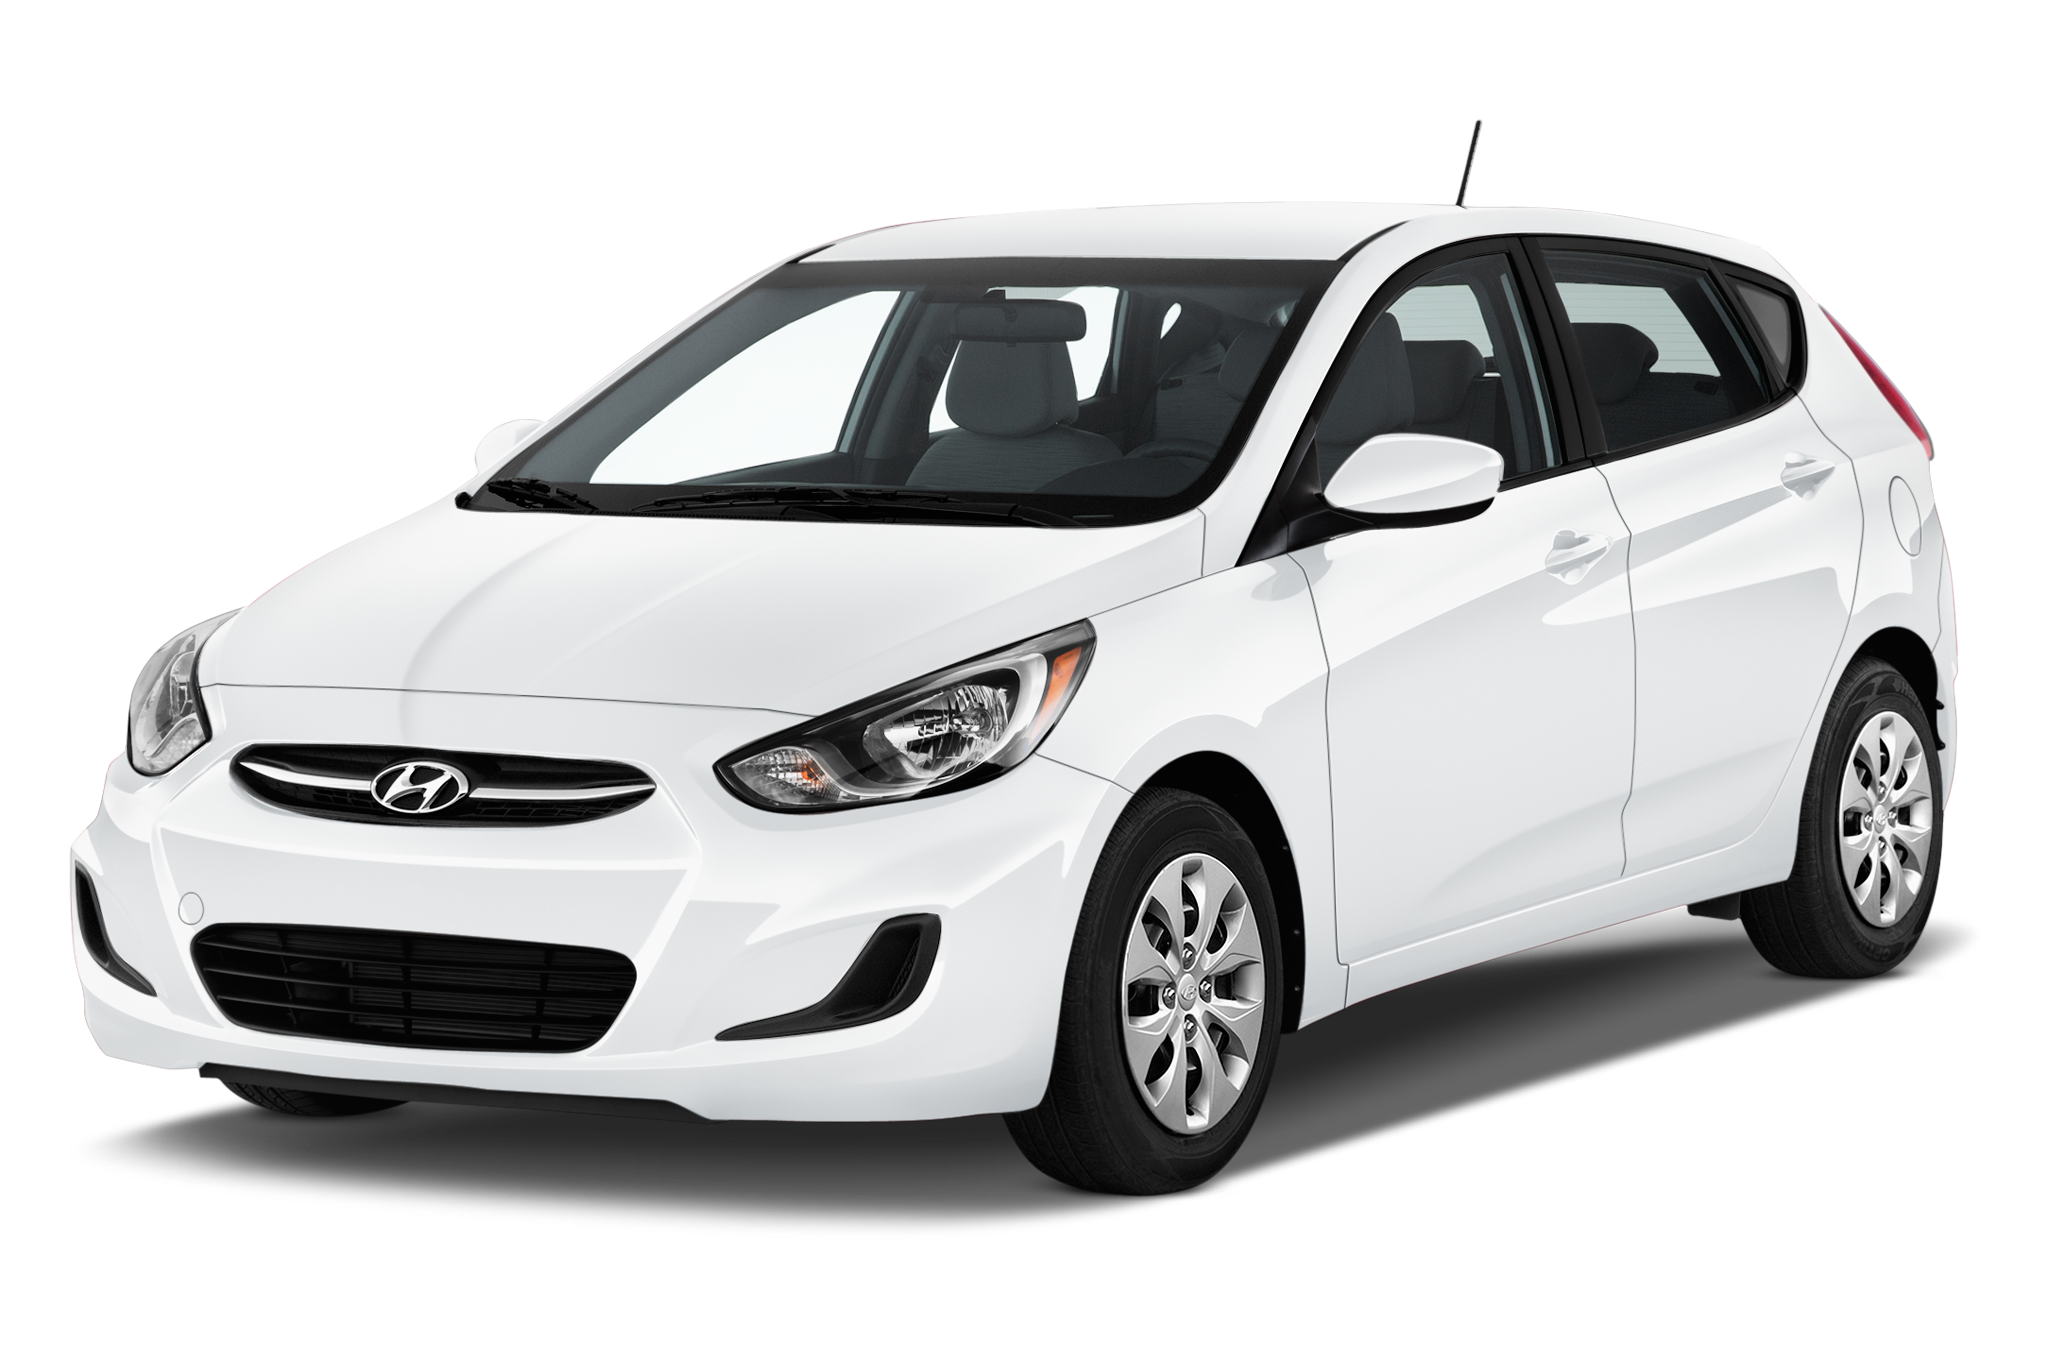 russian production spec hyundai accent sedan unveiled. Black Bedroom Furniture Sets. Home Design Ideas